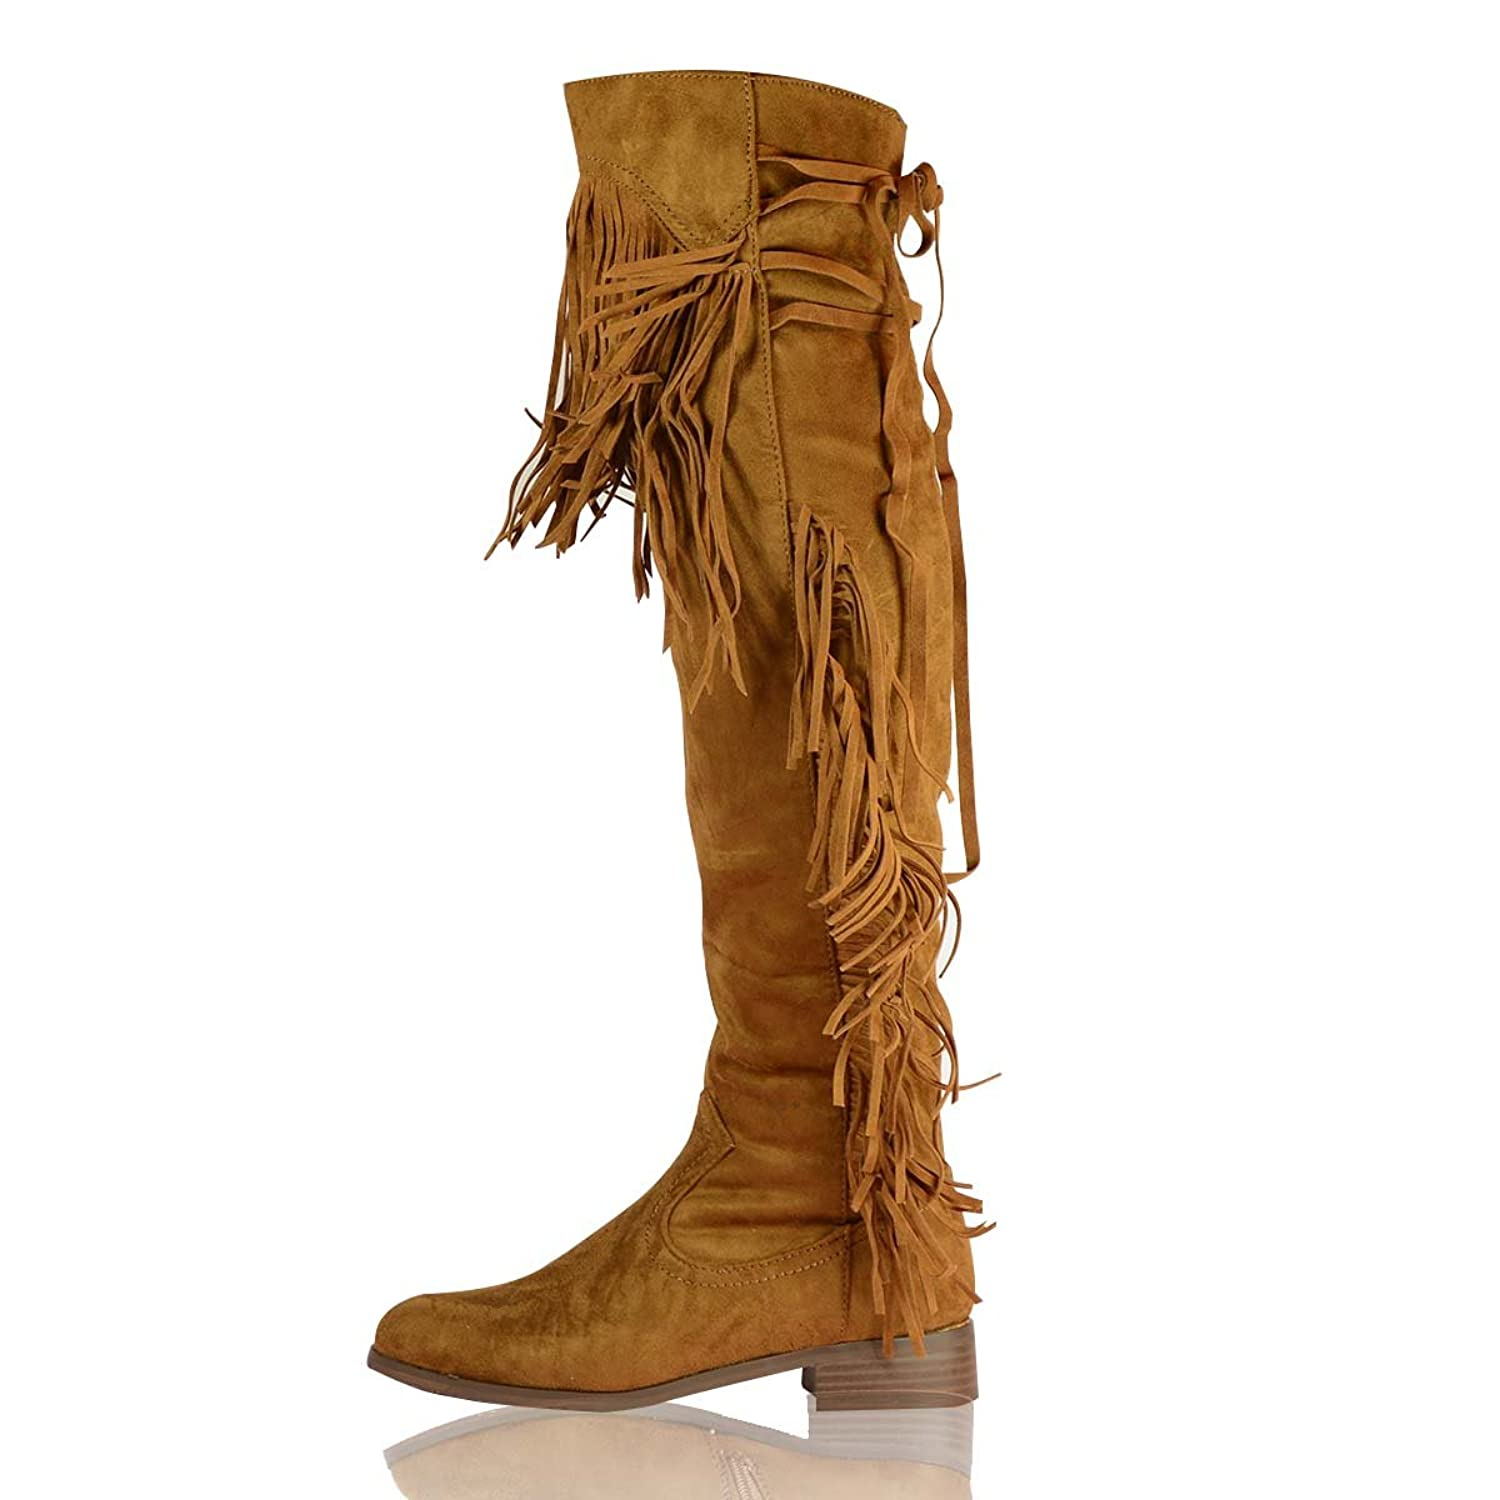 f456dd5ea New Ladies Over the Knee Fringed Boots Womens Thigh High Tassel Low Heel  Boots Work Winter Western Riding Flat Shoes Size UK 3-8 (UK 6, ...